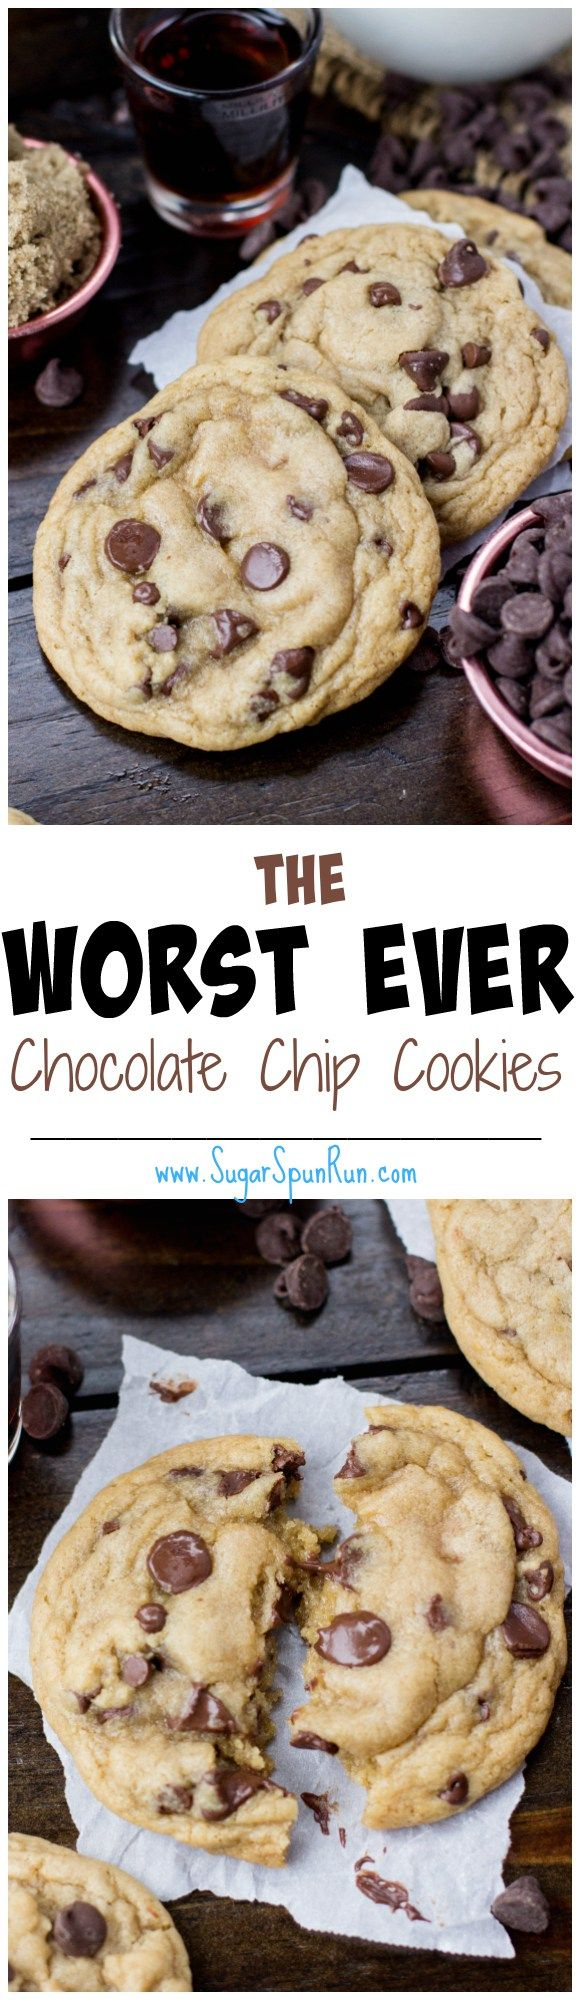 These chocolate chip cookies are AMAZING!